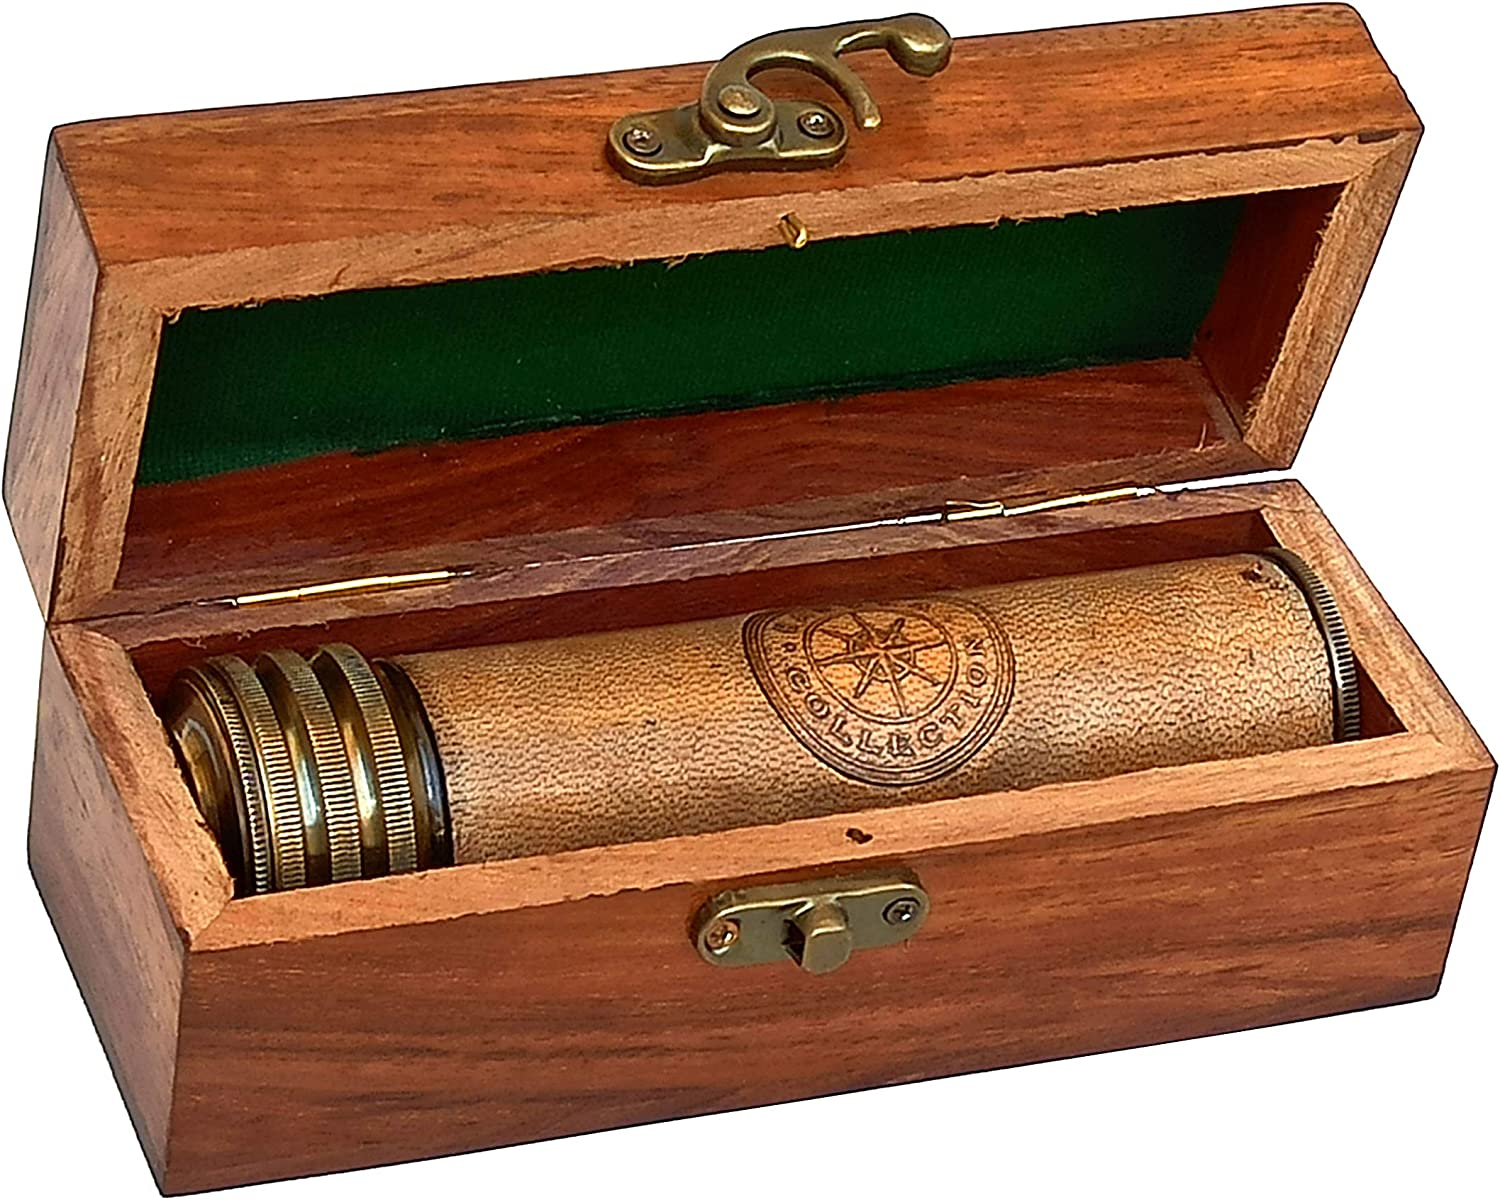 Hanzla Collection Leather Stiched Antique Brass Kaleidoscope Maritime Nautical Kids Gift with Wooden Box